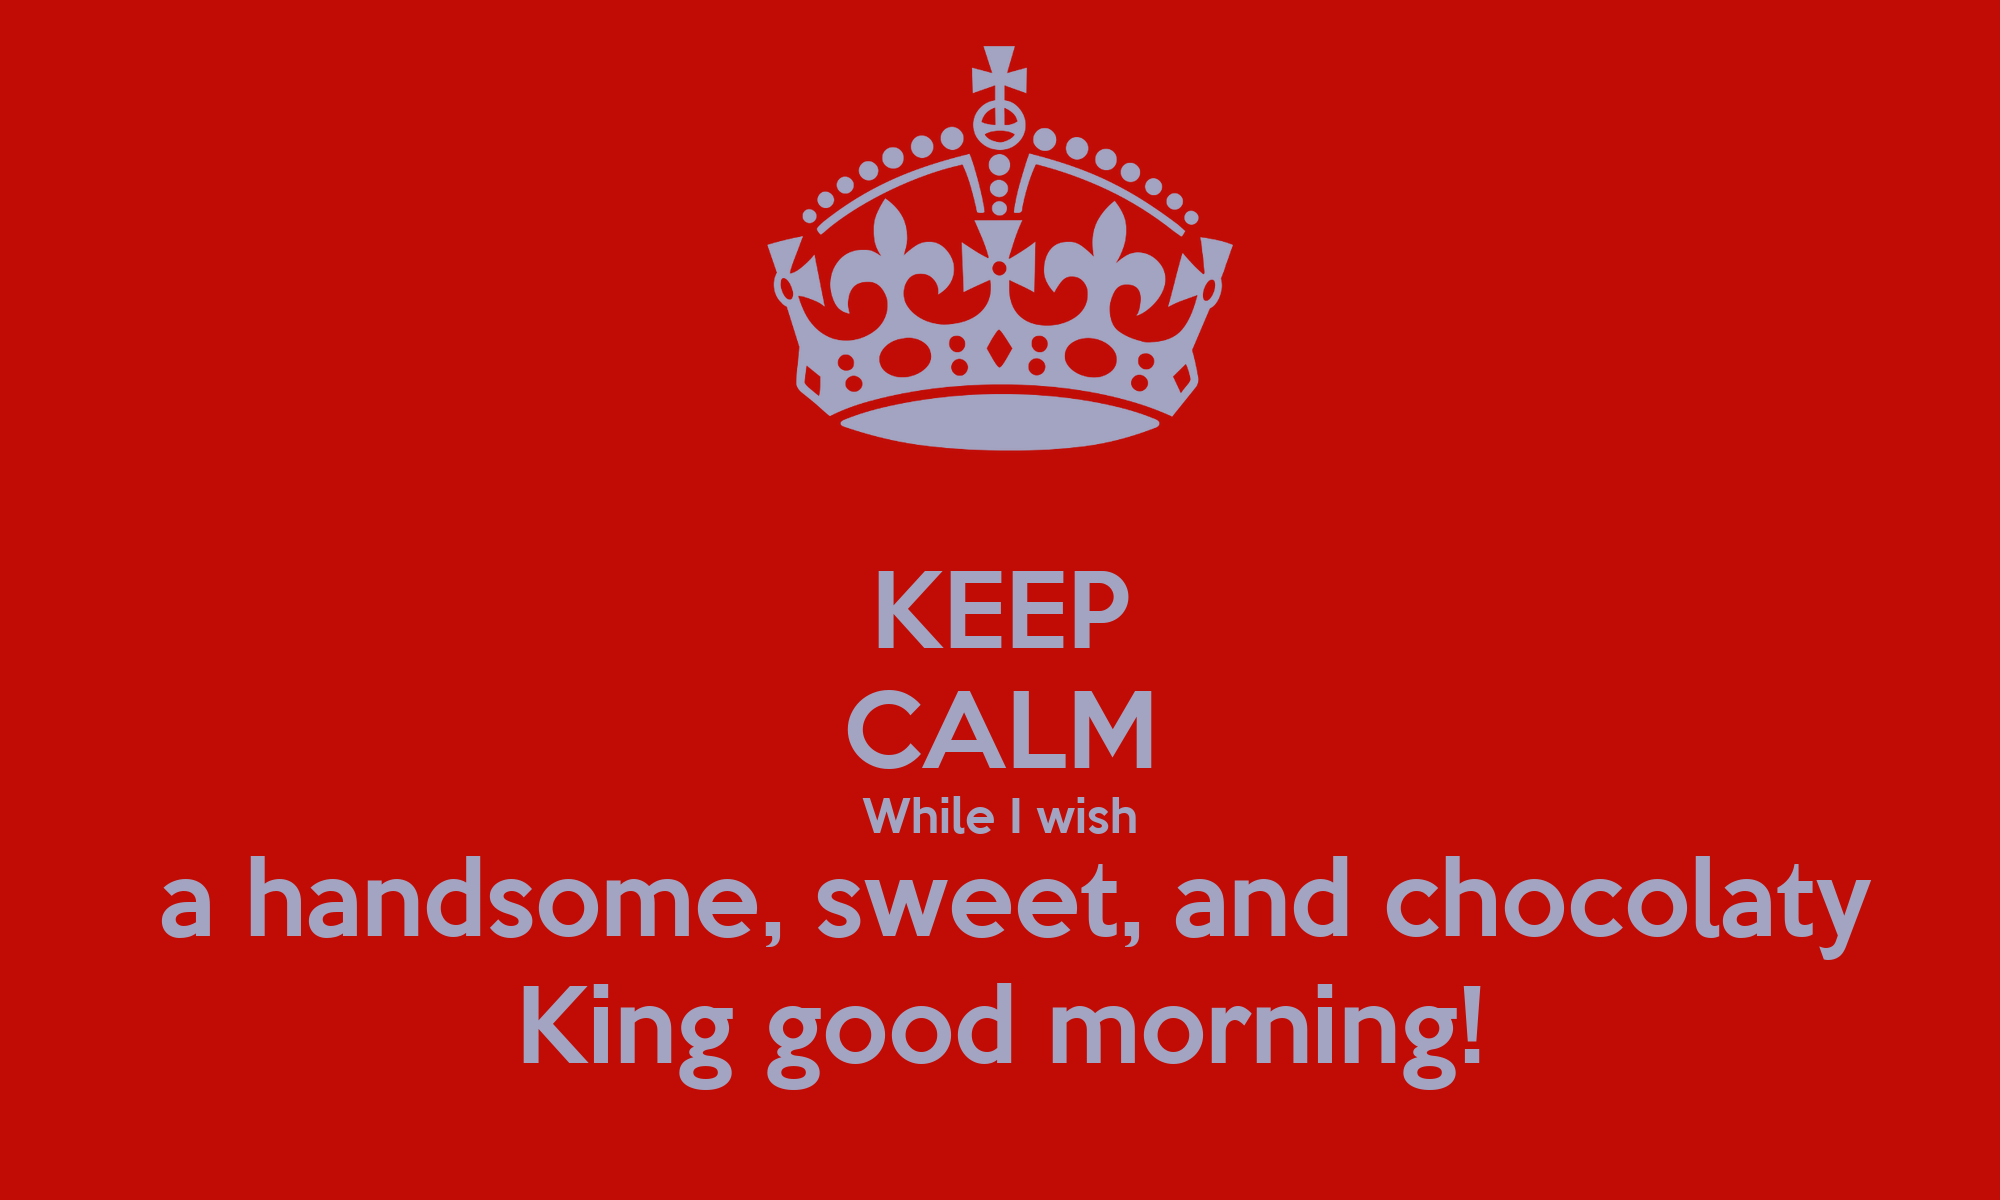 Good Morning My Handsome Man: KEEP CALM While I Wish A Handsome, Sweet, And Chocolaty